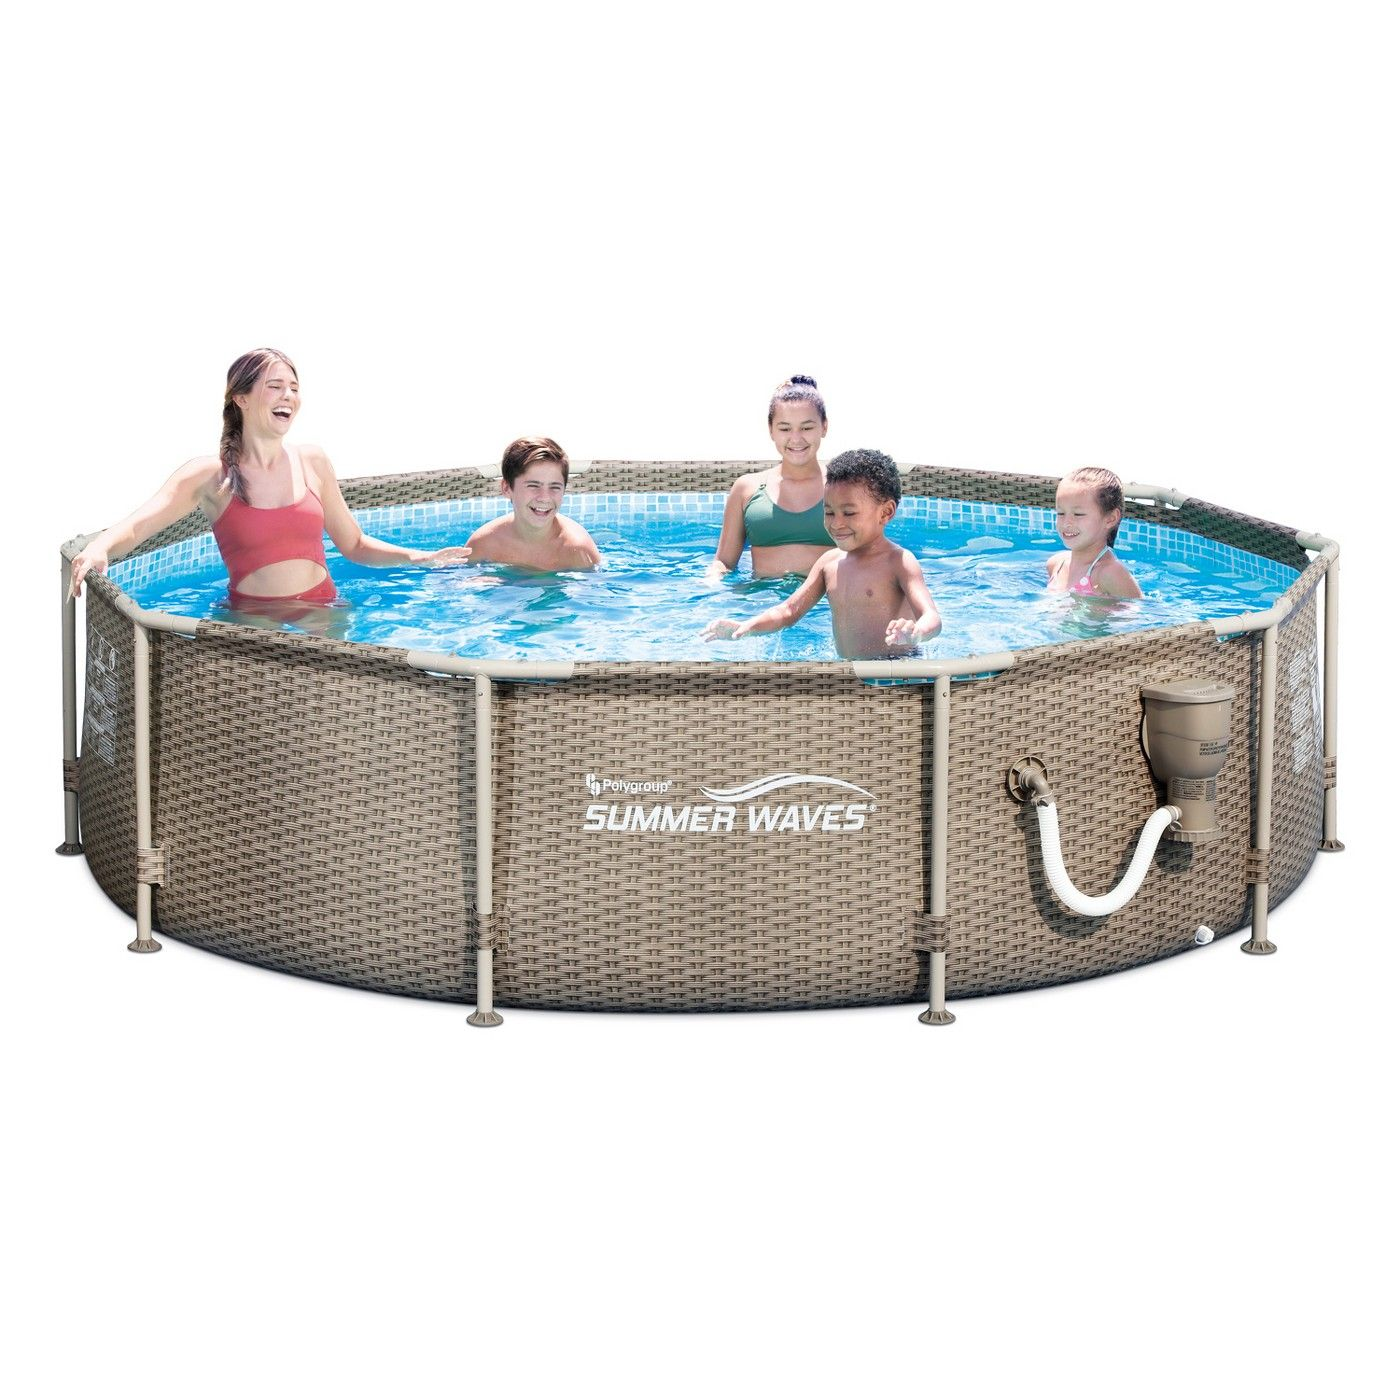 Summer Waves 10ft X 30in Frame Swimming Pool With Exterior Wicker Print Tan Summer Waves Swimming Pools Portable Pools